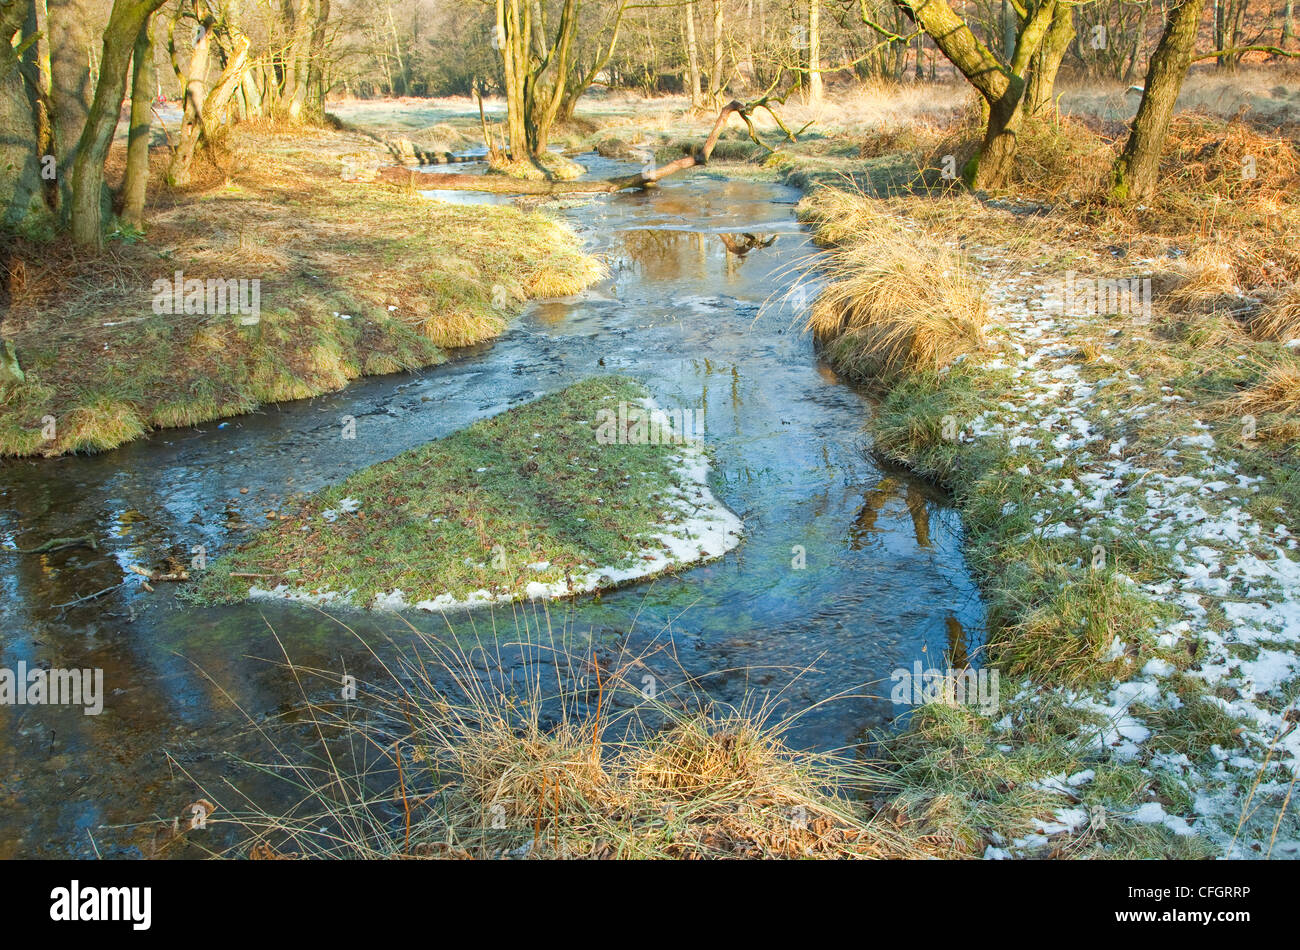 Severe frost in mid-winter, Sherbrook Valley, Cannock Chase Country Park AONB (area of outstanding natural beauty) - Stock Image